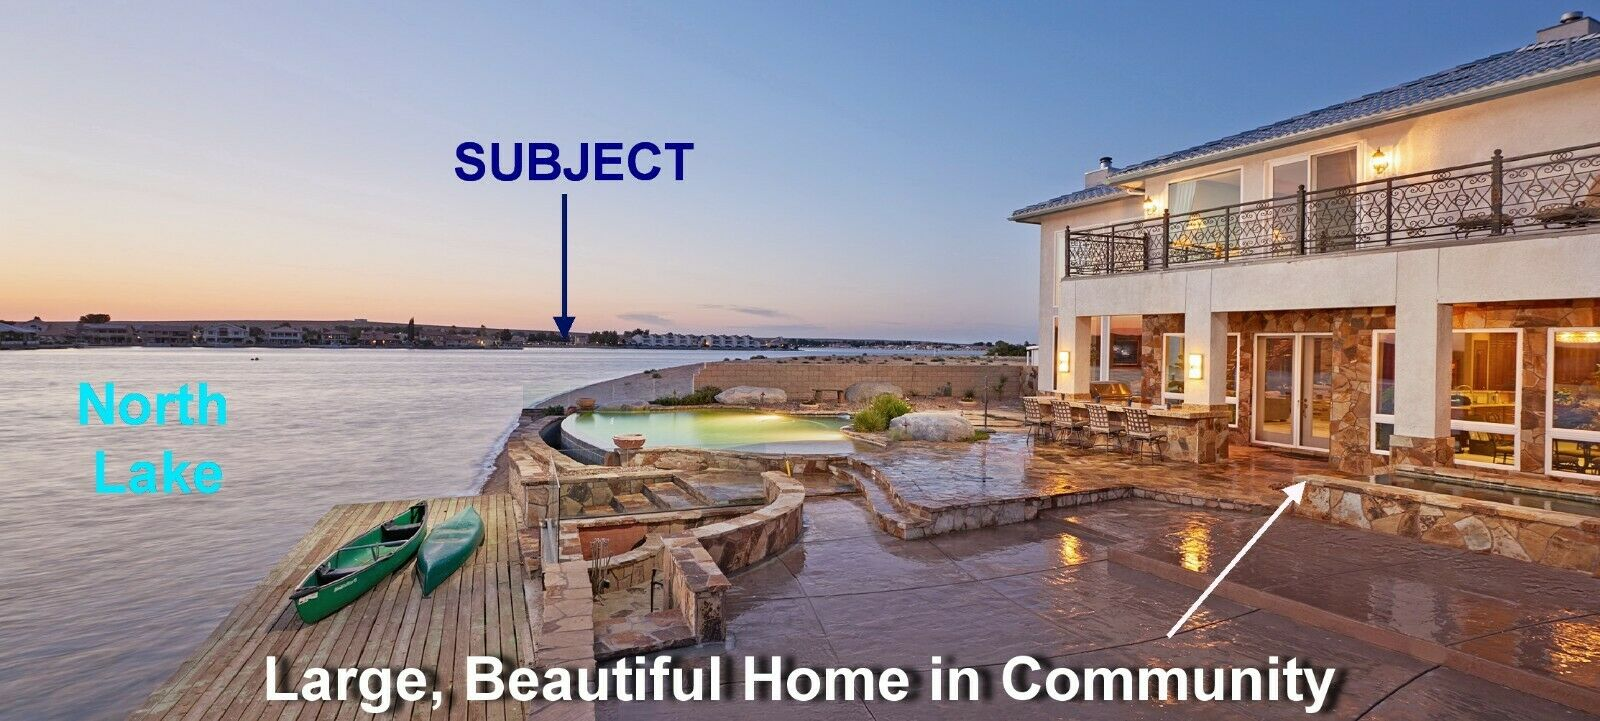 Southern California Waterfront Property in Beautiful Golf & Lakefront Community